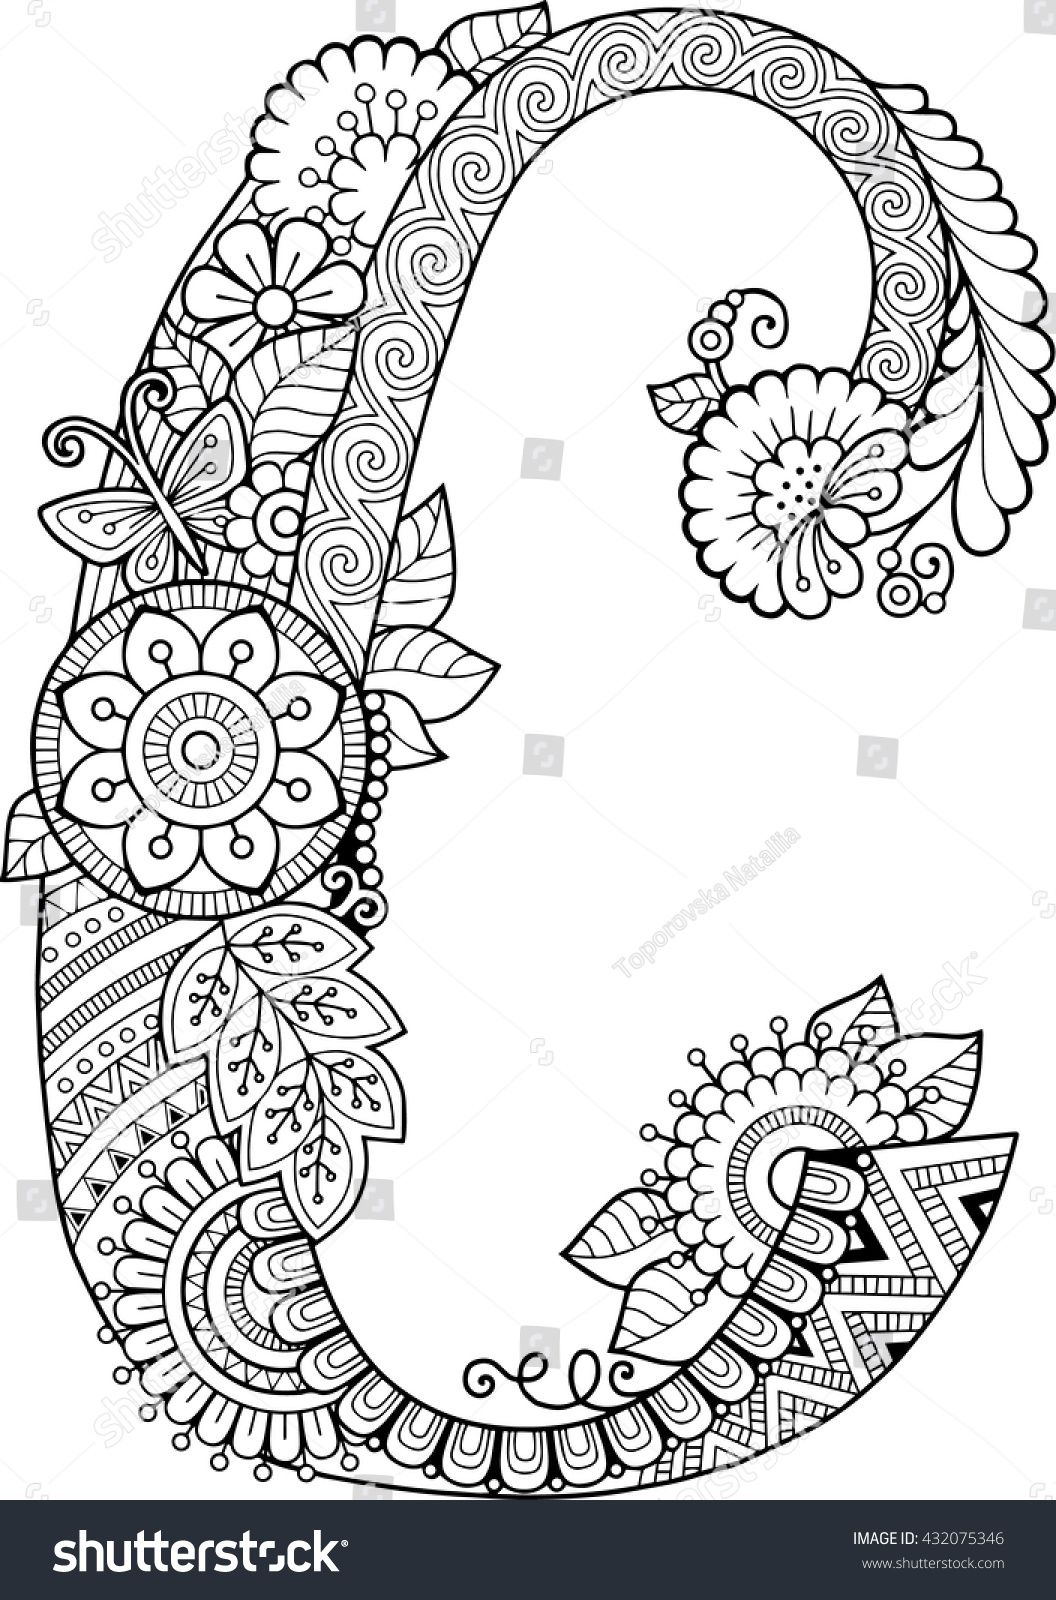 Free Coloring Pages Download Book For Adults Floral Doodle Letter Hand Drawn Flowers Of